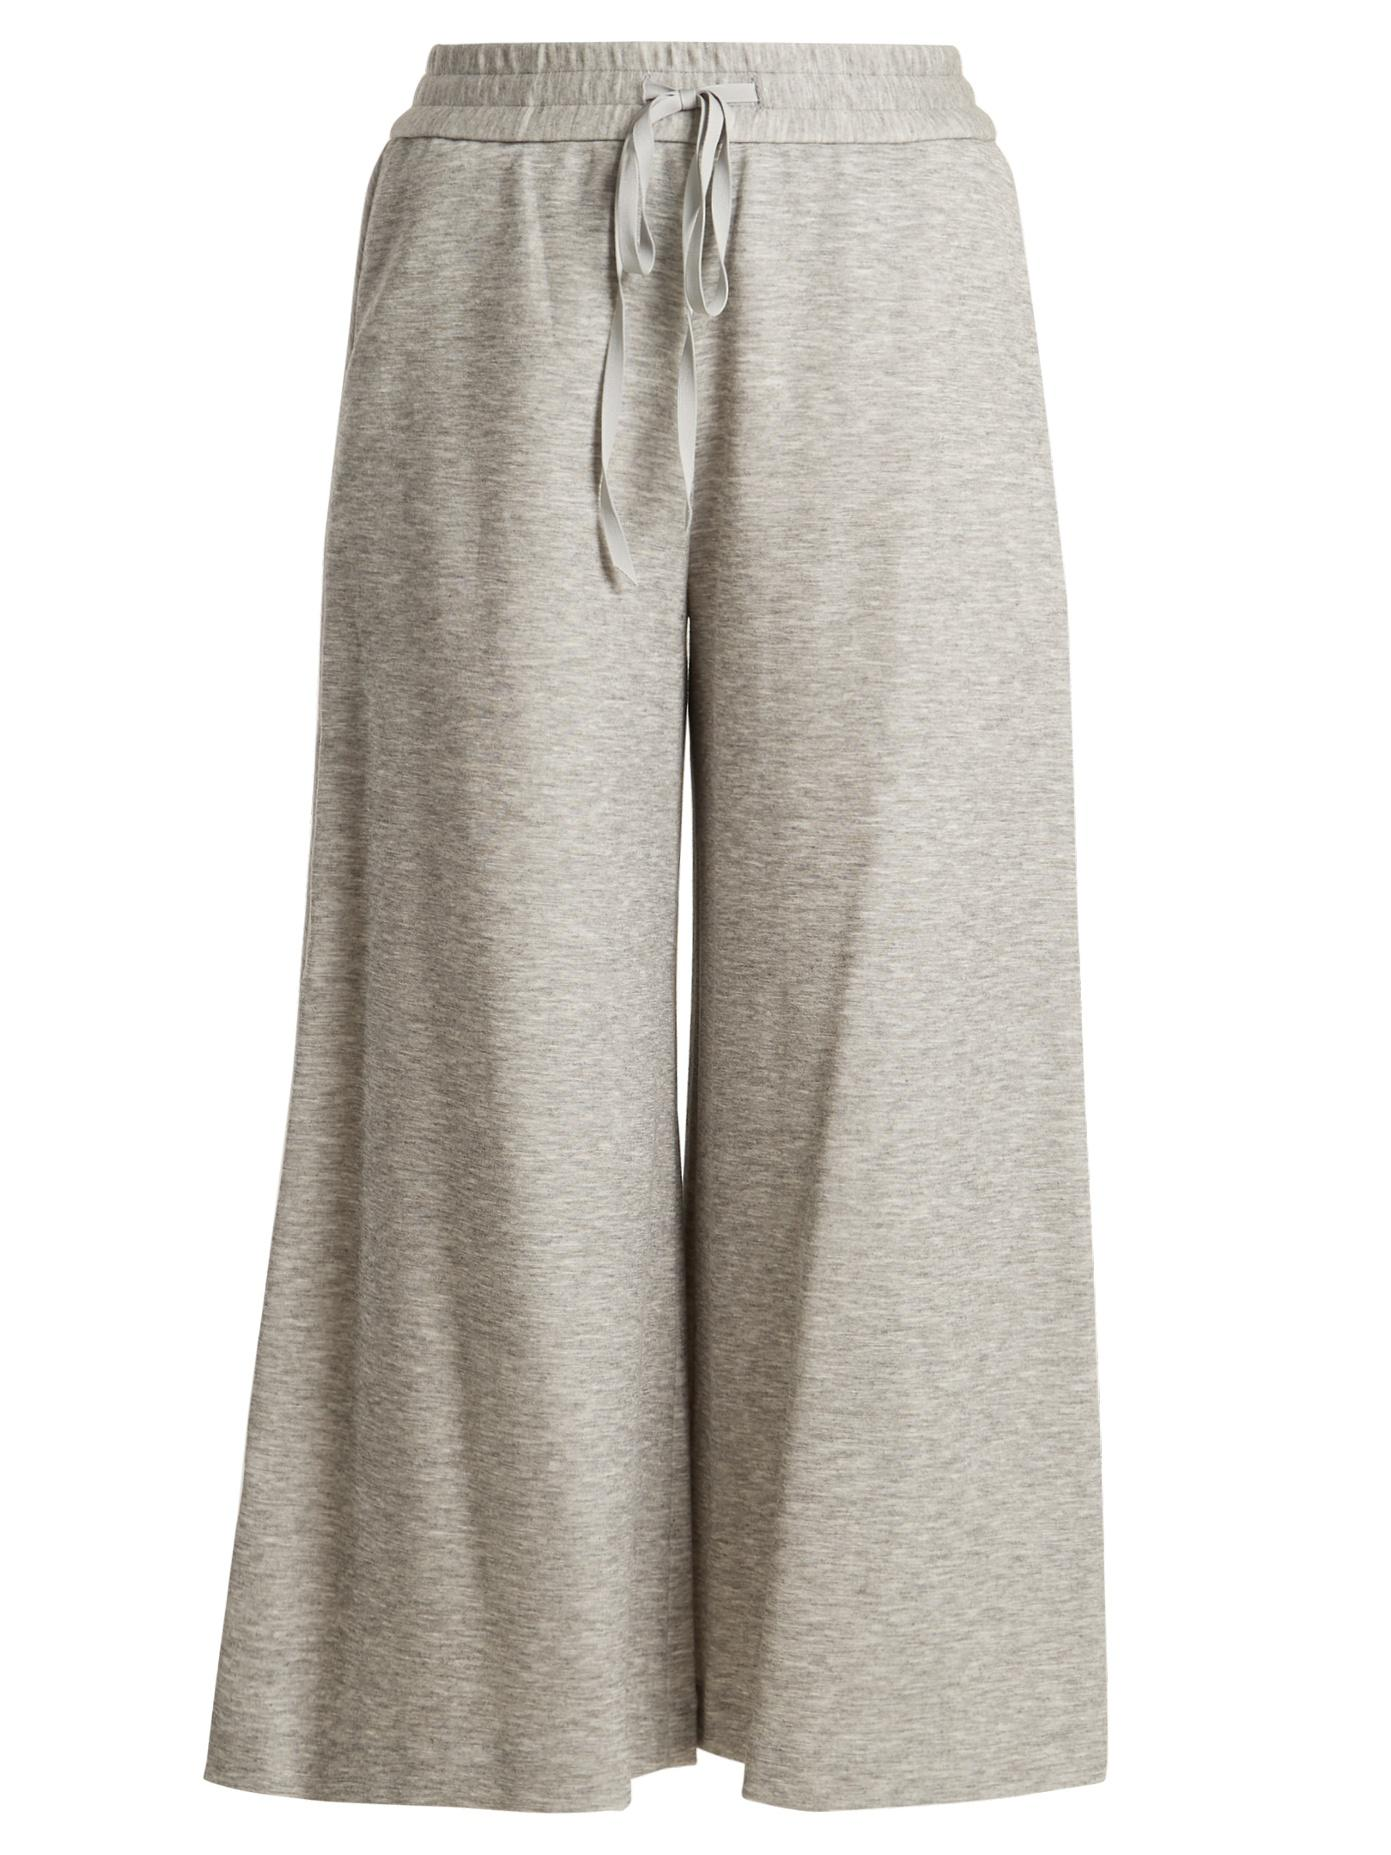 Adam Lippes Drawstring-Waist Jersey Culottes In Light Grey